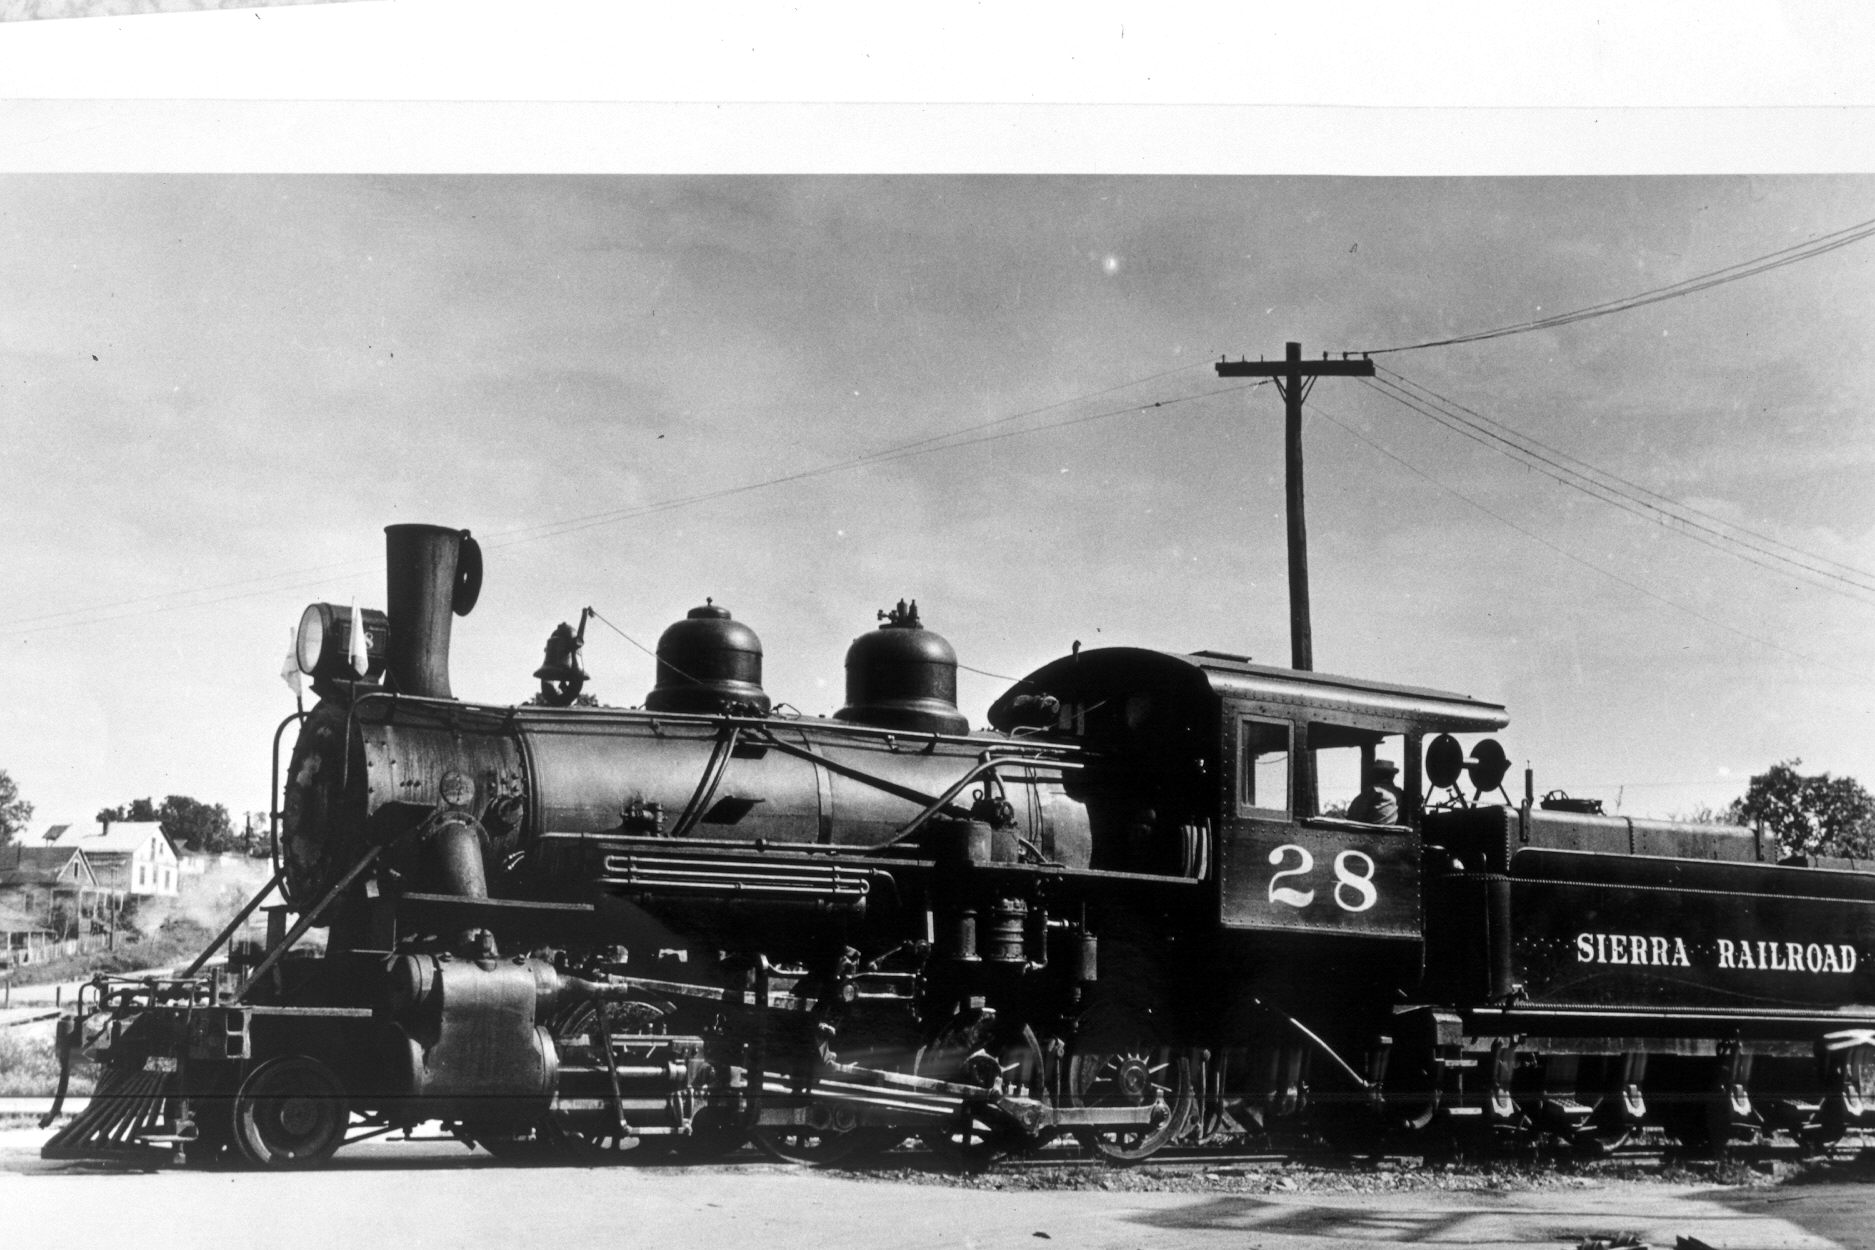 Used Car Stockton Ca The Sierra No. 28 was one of only six steam locomotives retained by ...